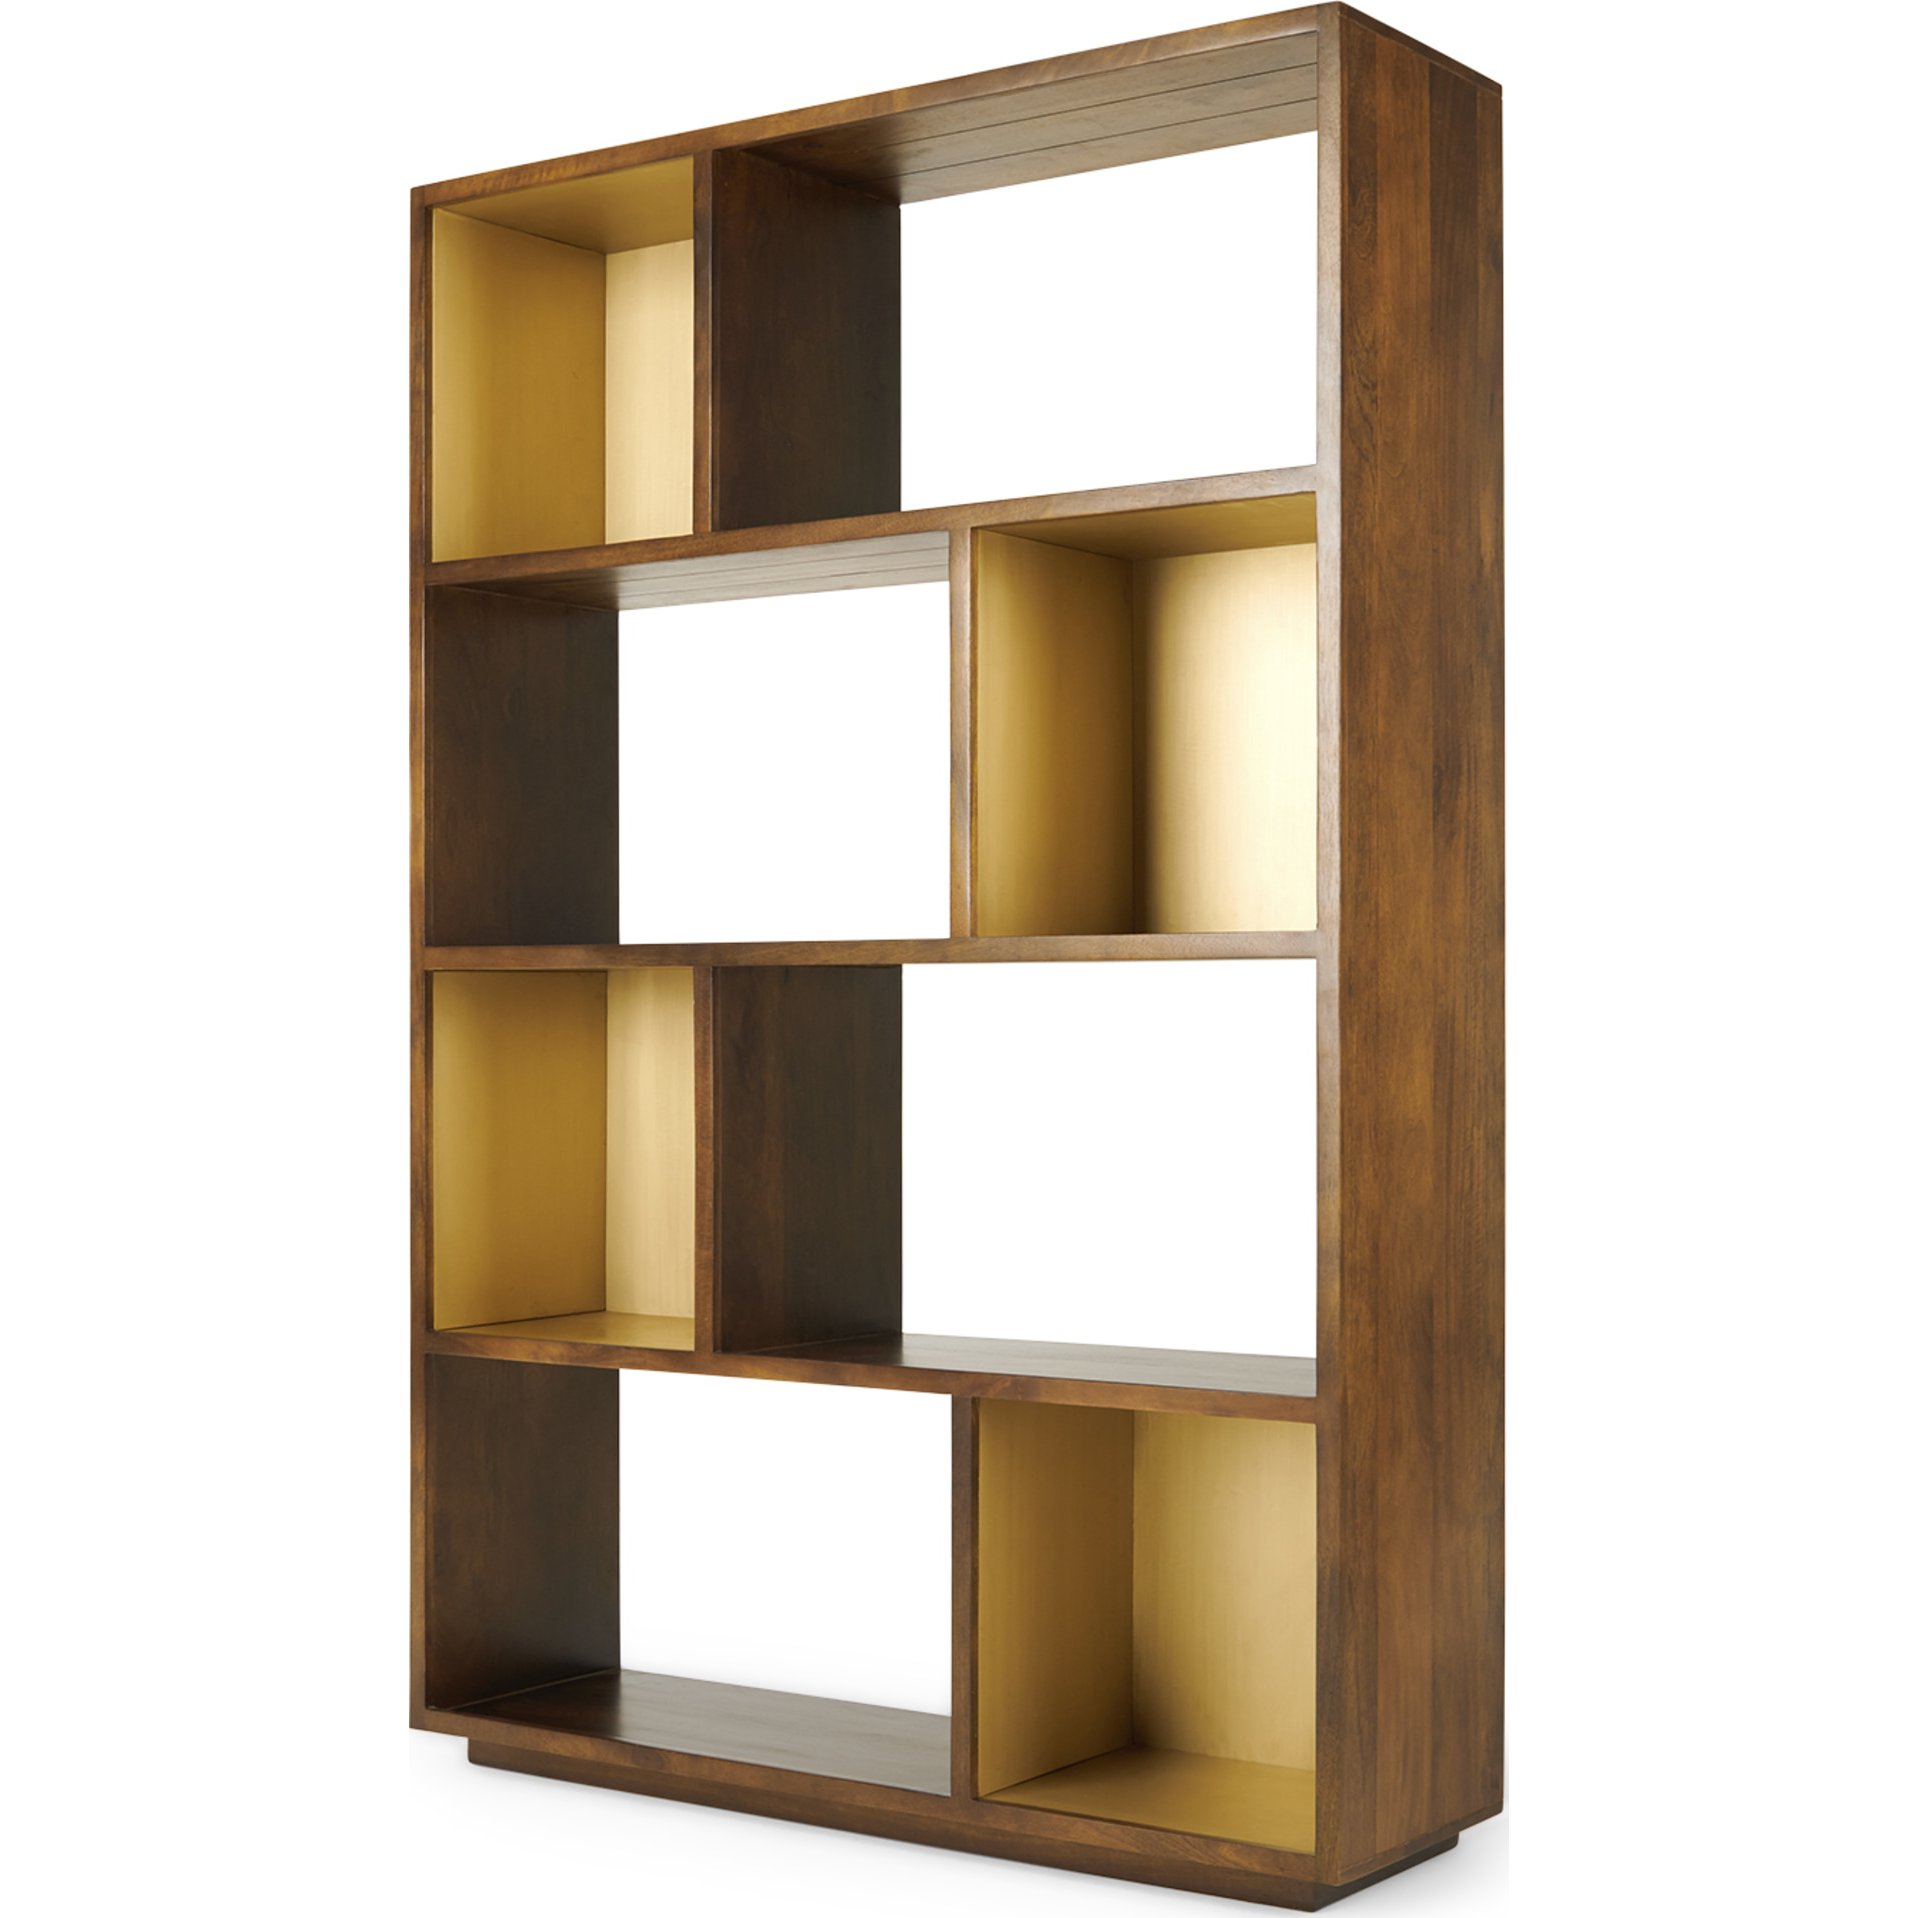 image-Anderson Wide Shelving Unit, Mango Wood and Brass